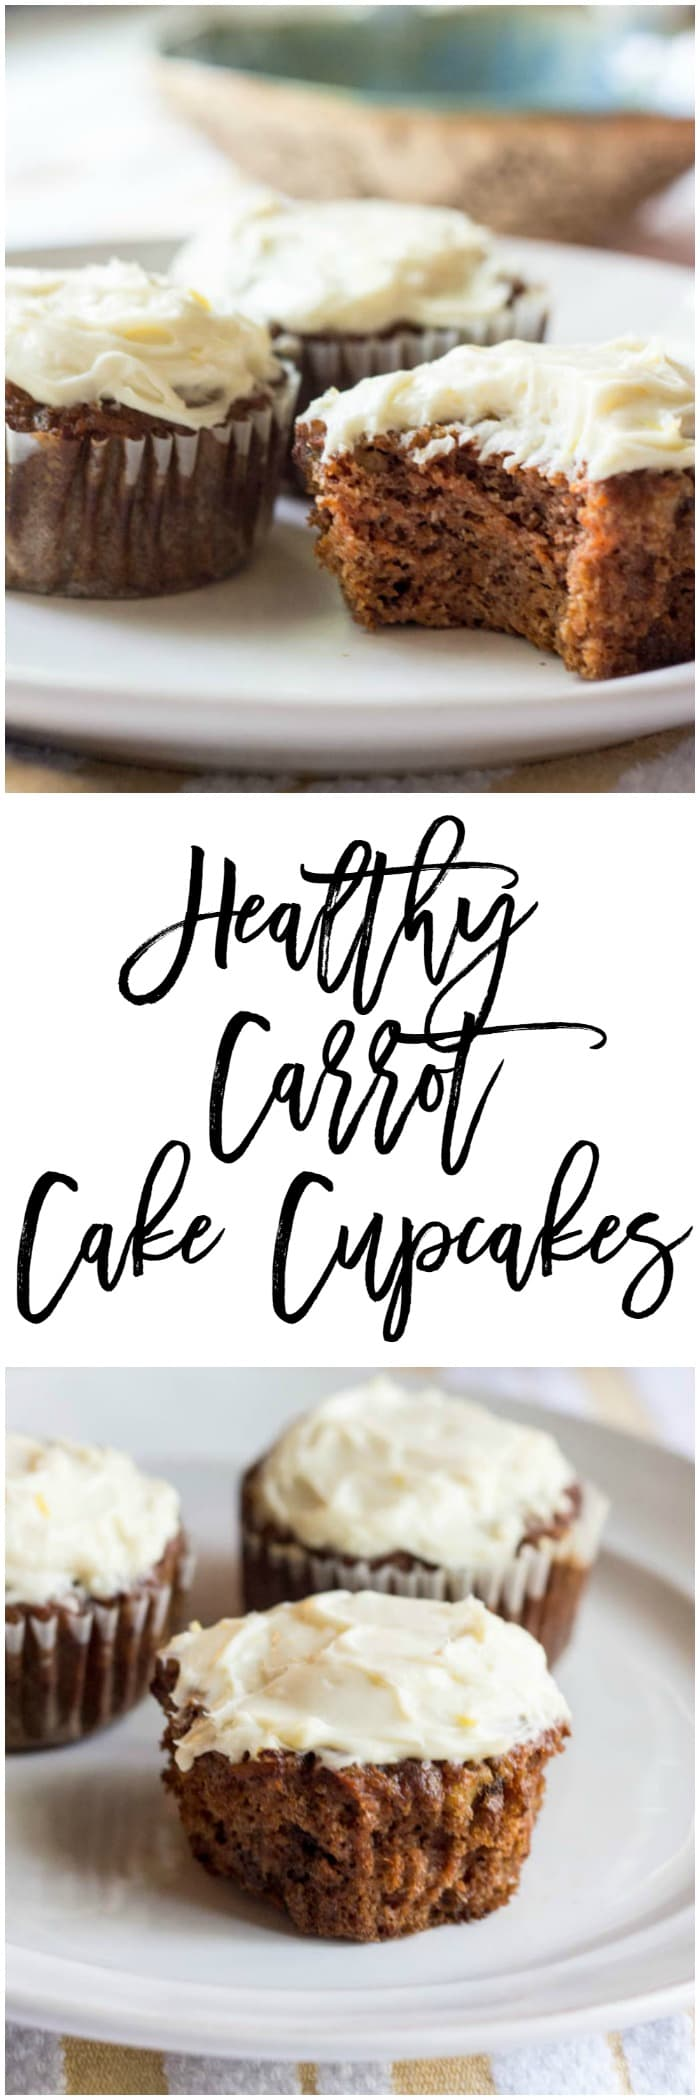 Healthy Carrot Cake Cupcakes with Lemon Cream Cheese Frosting - a wonderful and easy recipe when you are craving carrot cake cupcakes. These are SO good!